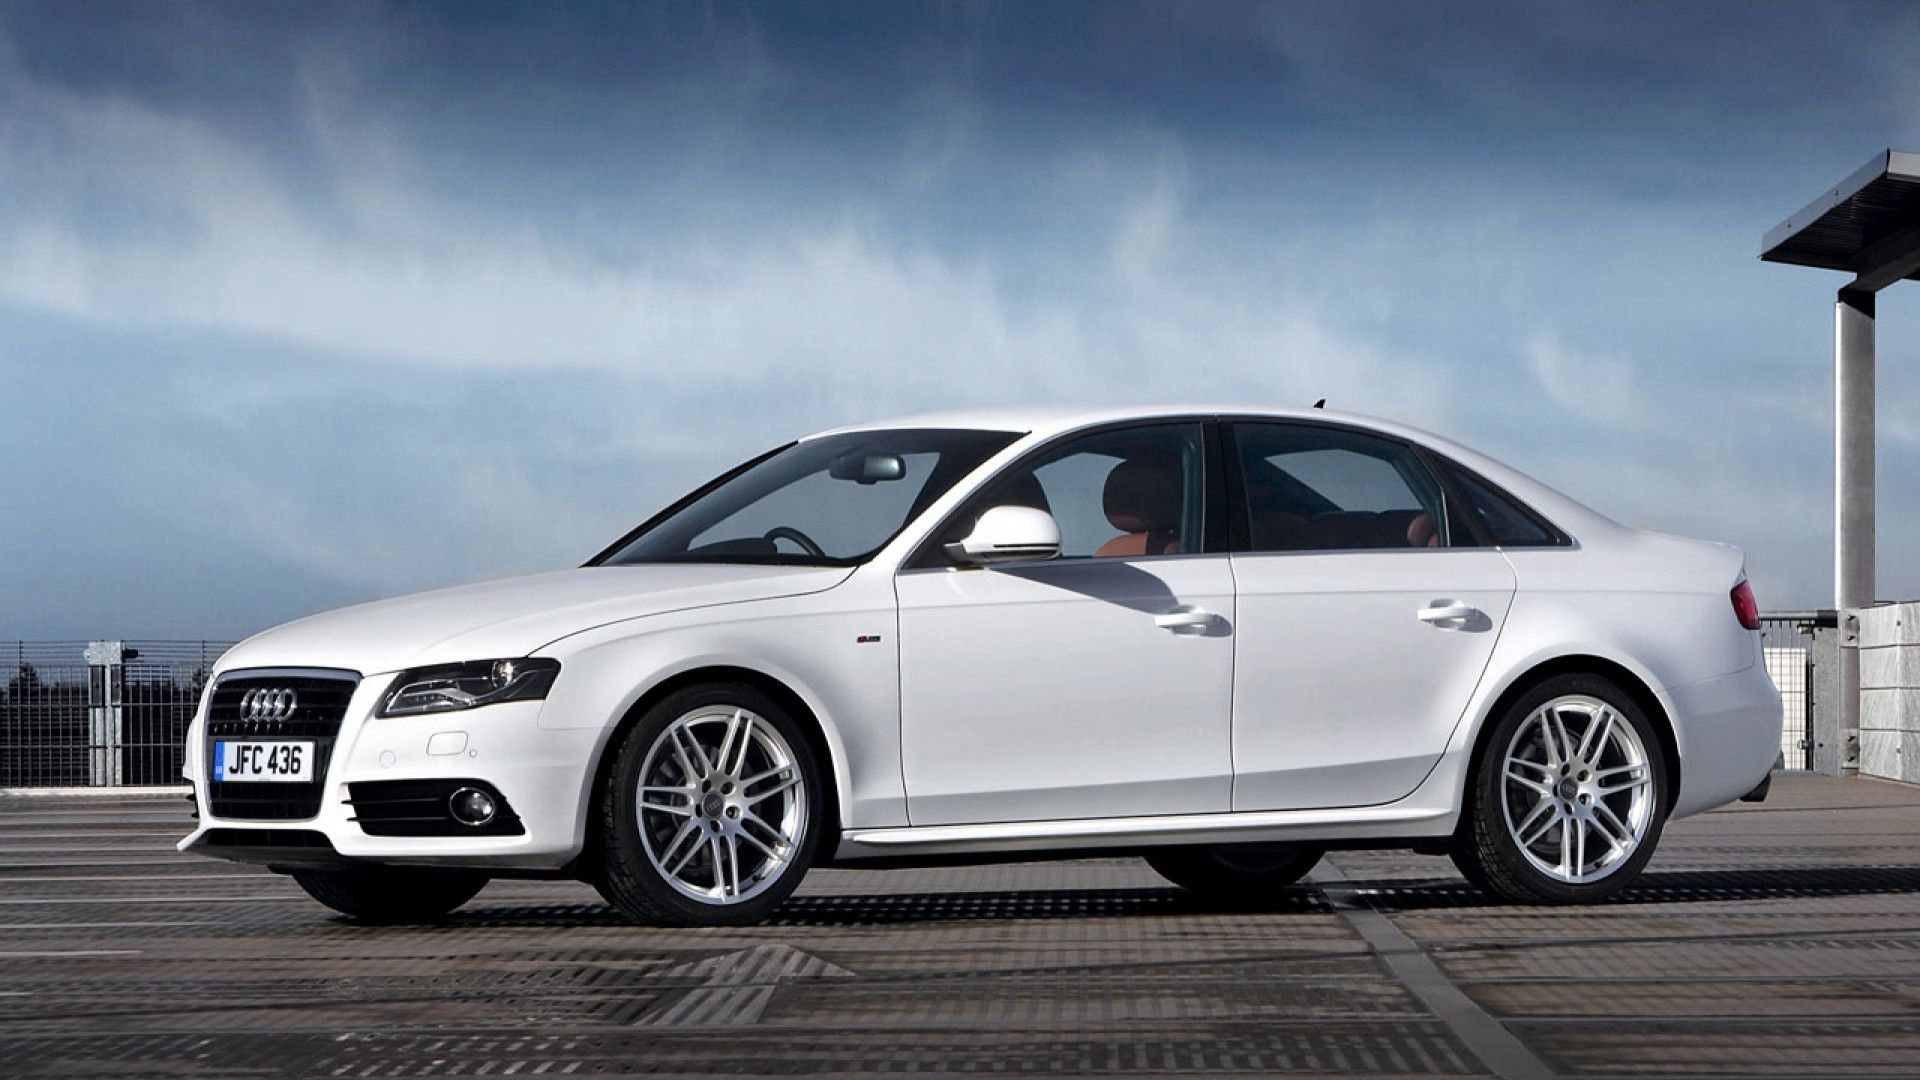 Audi A4 (2007 to Present)